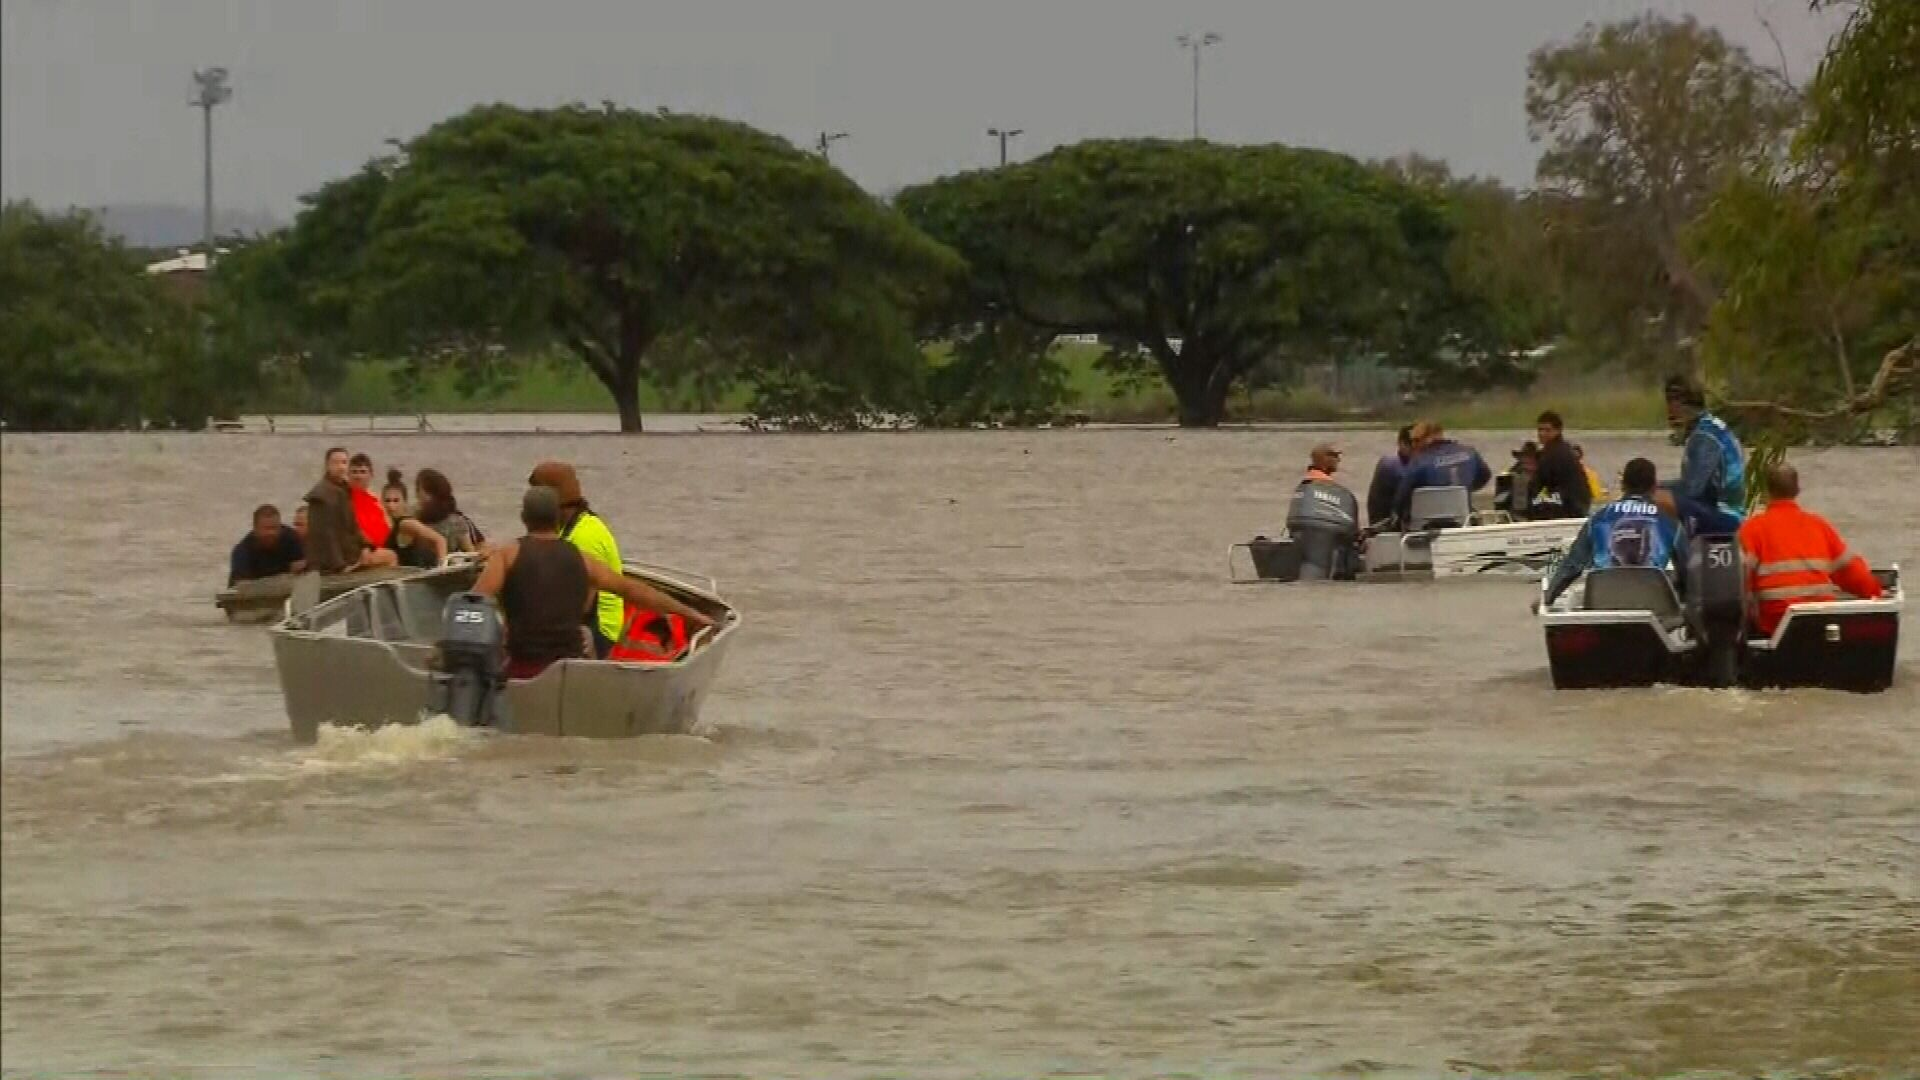 NRL: North Queensland Cowboys aid Townsville flood victims